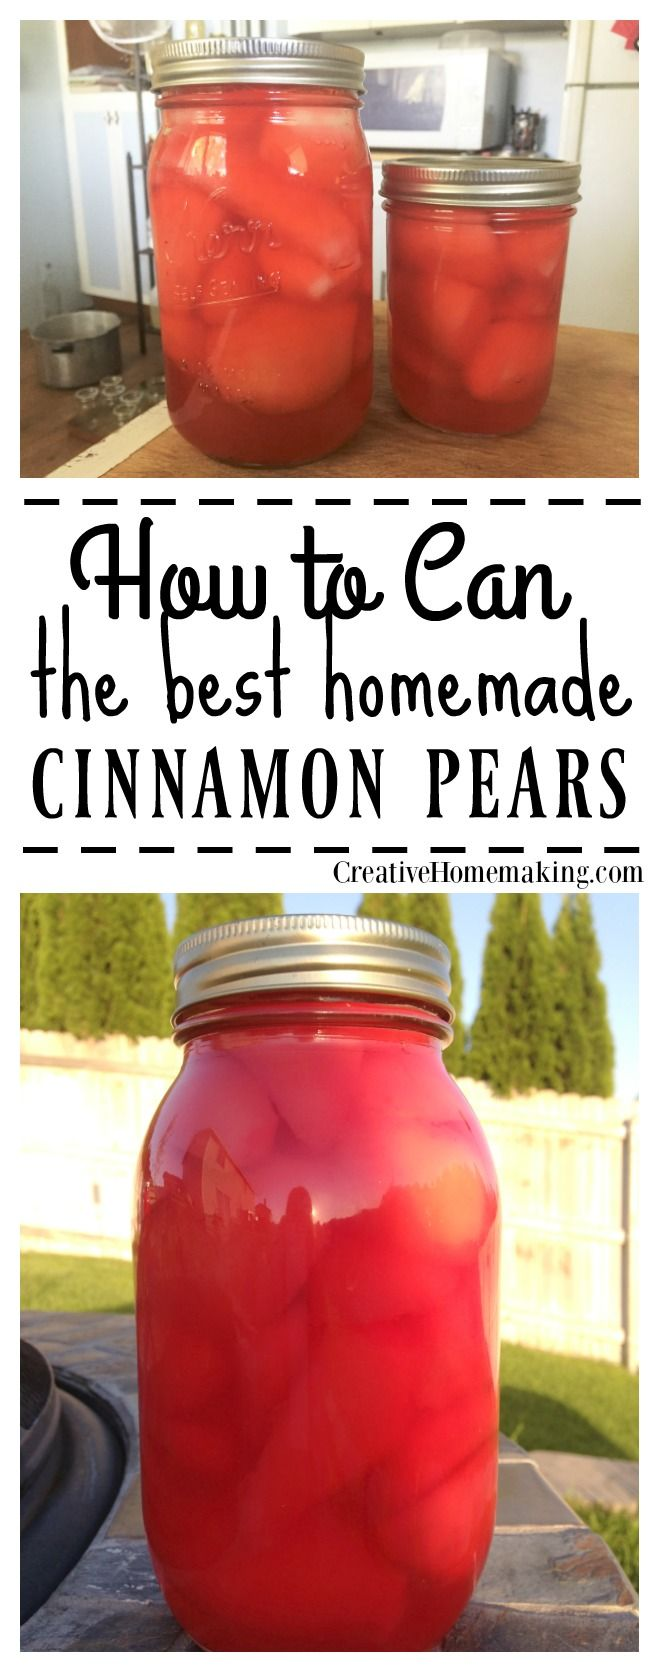 Adding red hots to canned pears gives fresh pears a nice cinnamon twist.